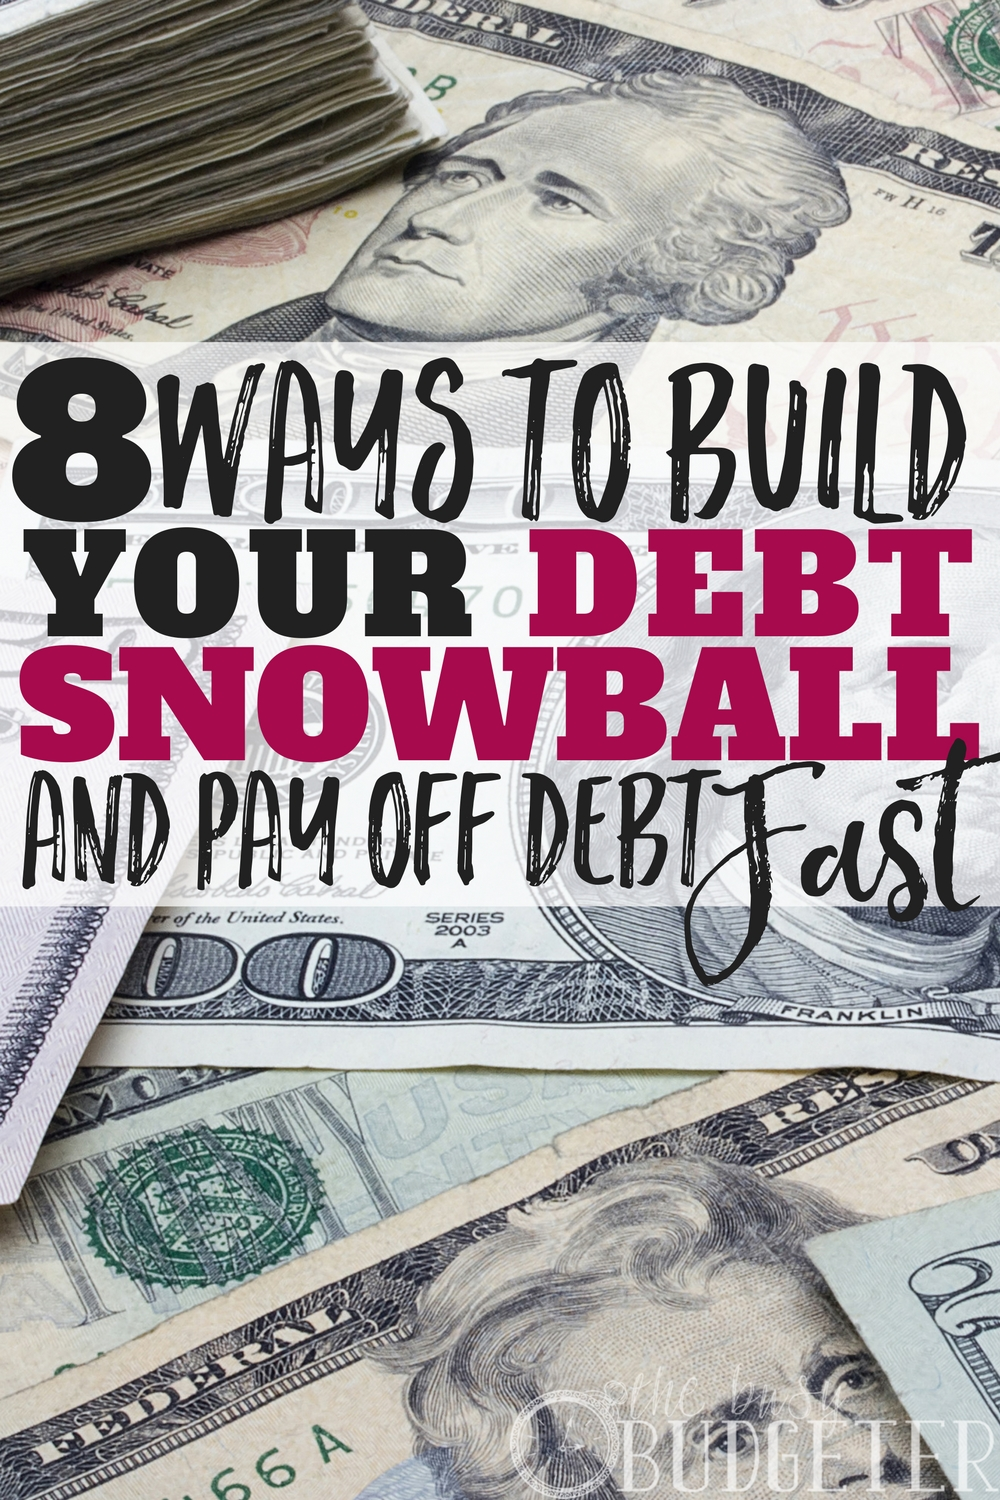 I had tons of debt. Student loans, credit cards, you name it and I was buried with it. Then after we increased our income we really sat down to plan the best way to pay off debt fast. We came up with a debt snowball that worked for us and followed this article to build our snowball and really knock out our debt-- worked fantastic!!